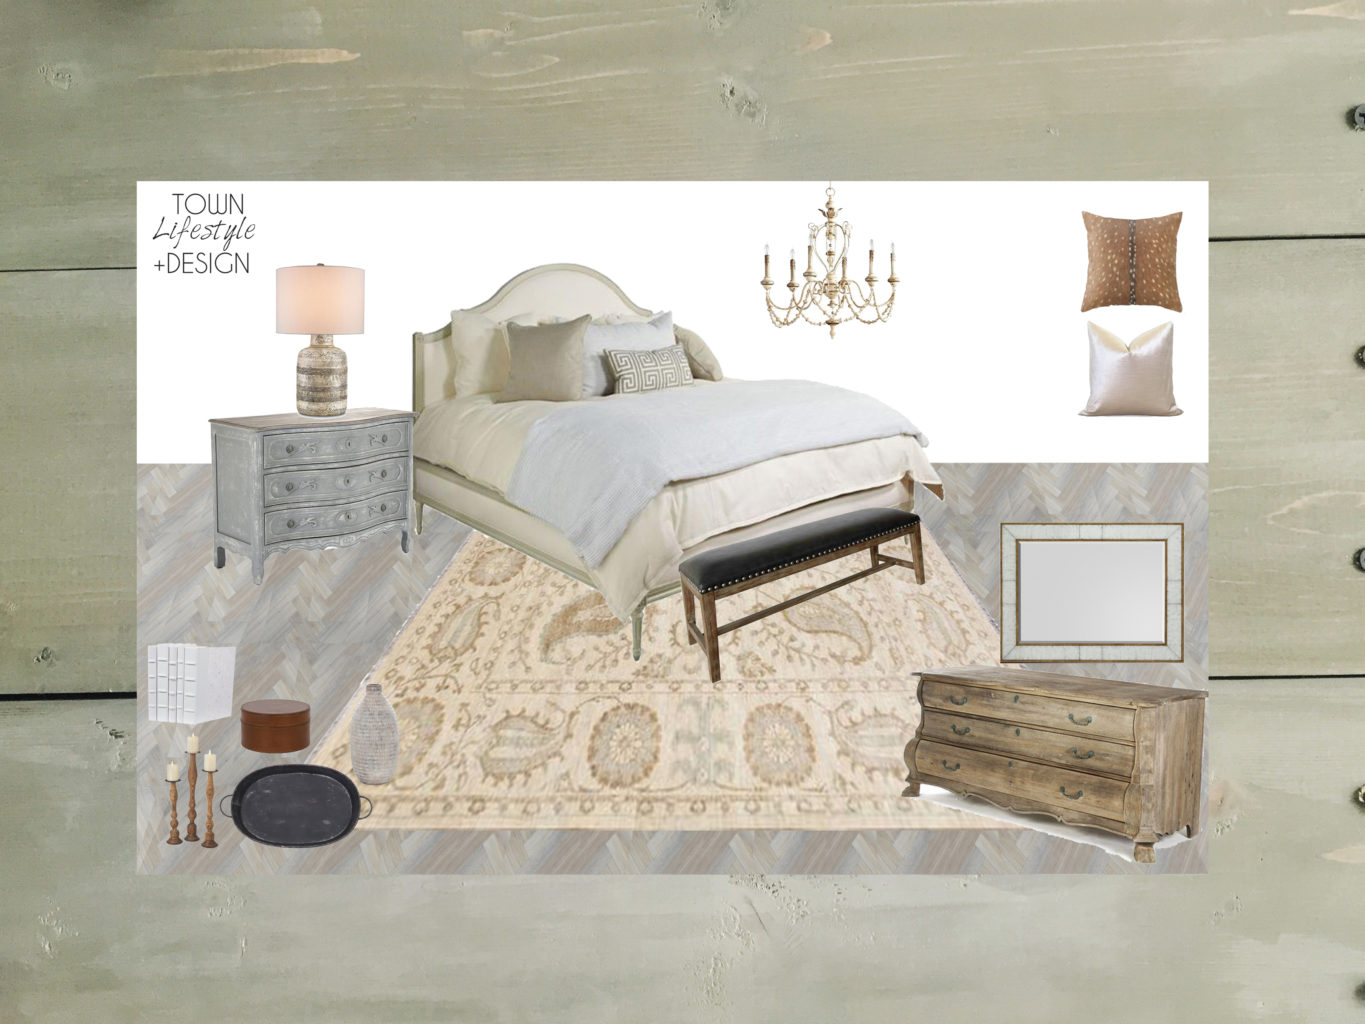 Get This Look: #projectrusticchic || Town Lifestyle + Design || Get the look of this rustic master bedroom designed for an e-design interiors project